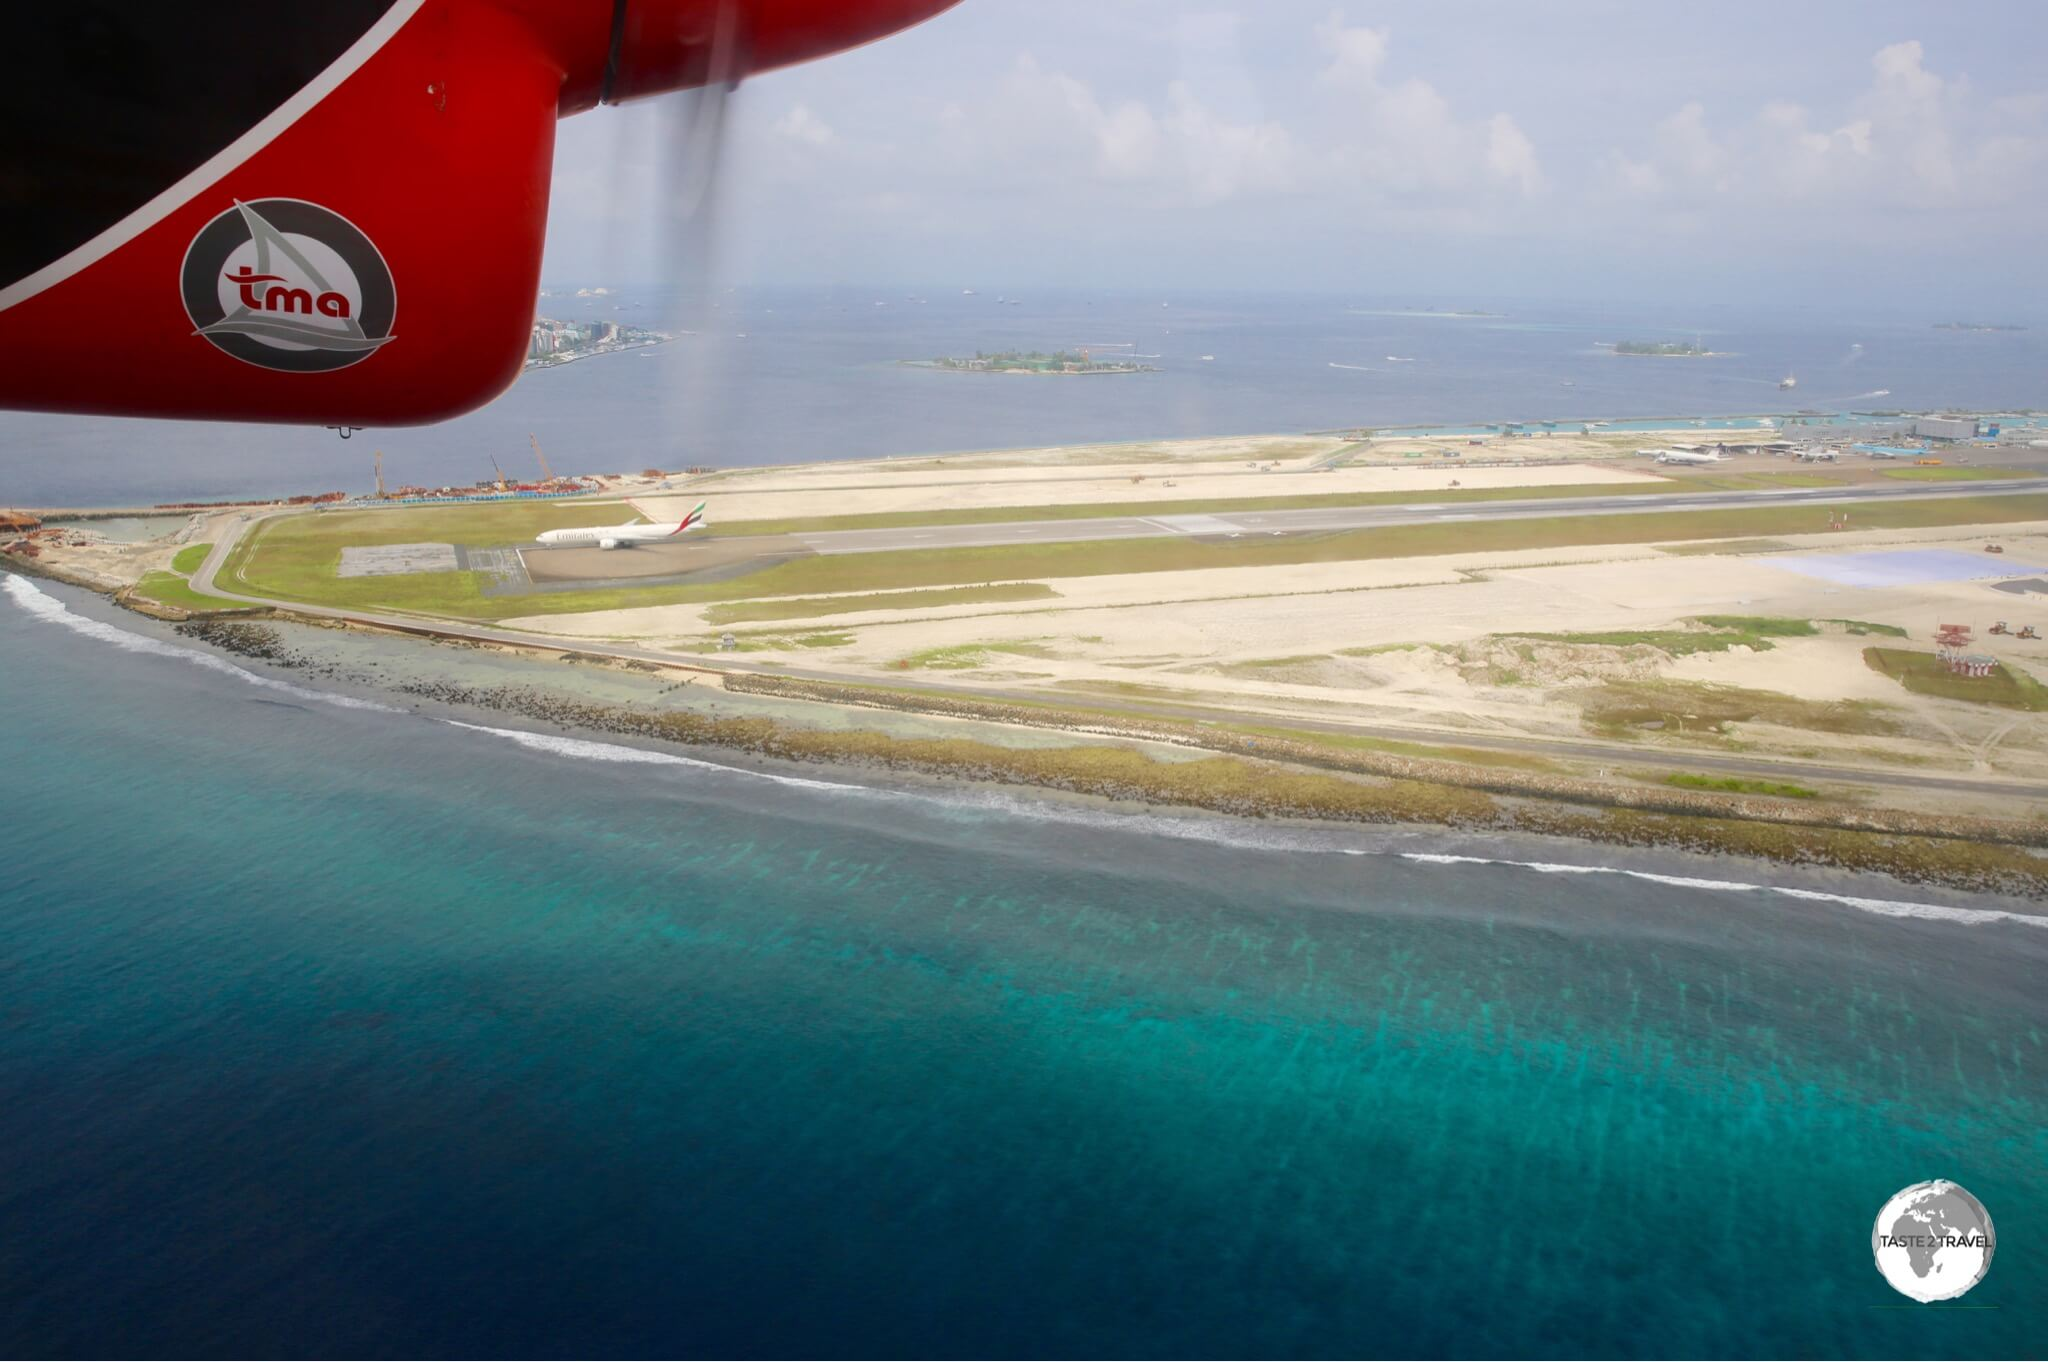 A view of Velana International airport which is currently undergoing an $800-million expansion by a Beijing company.